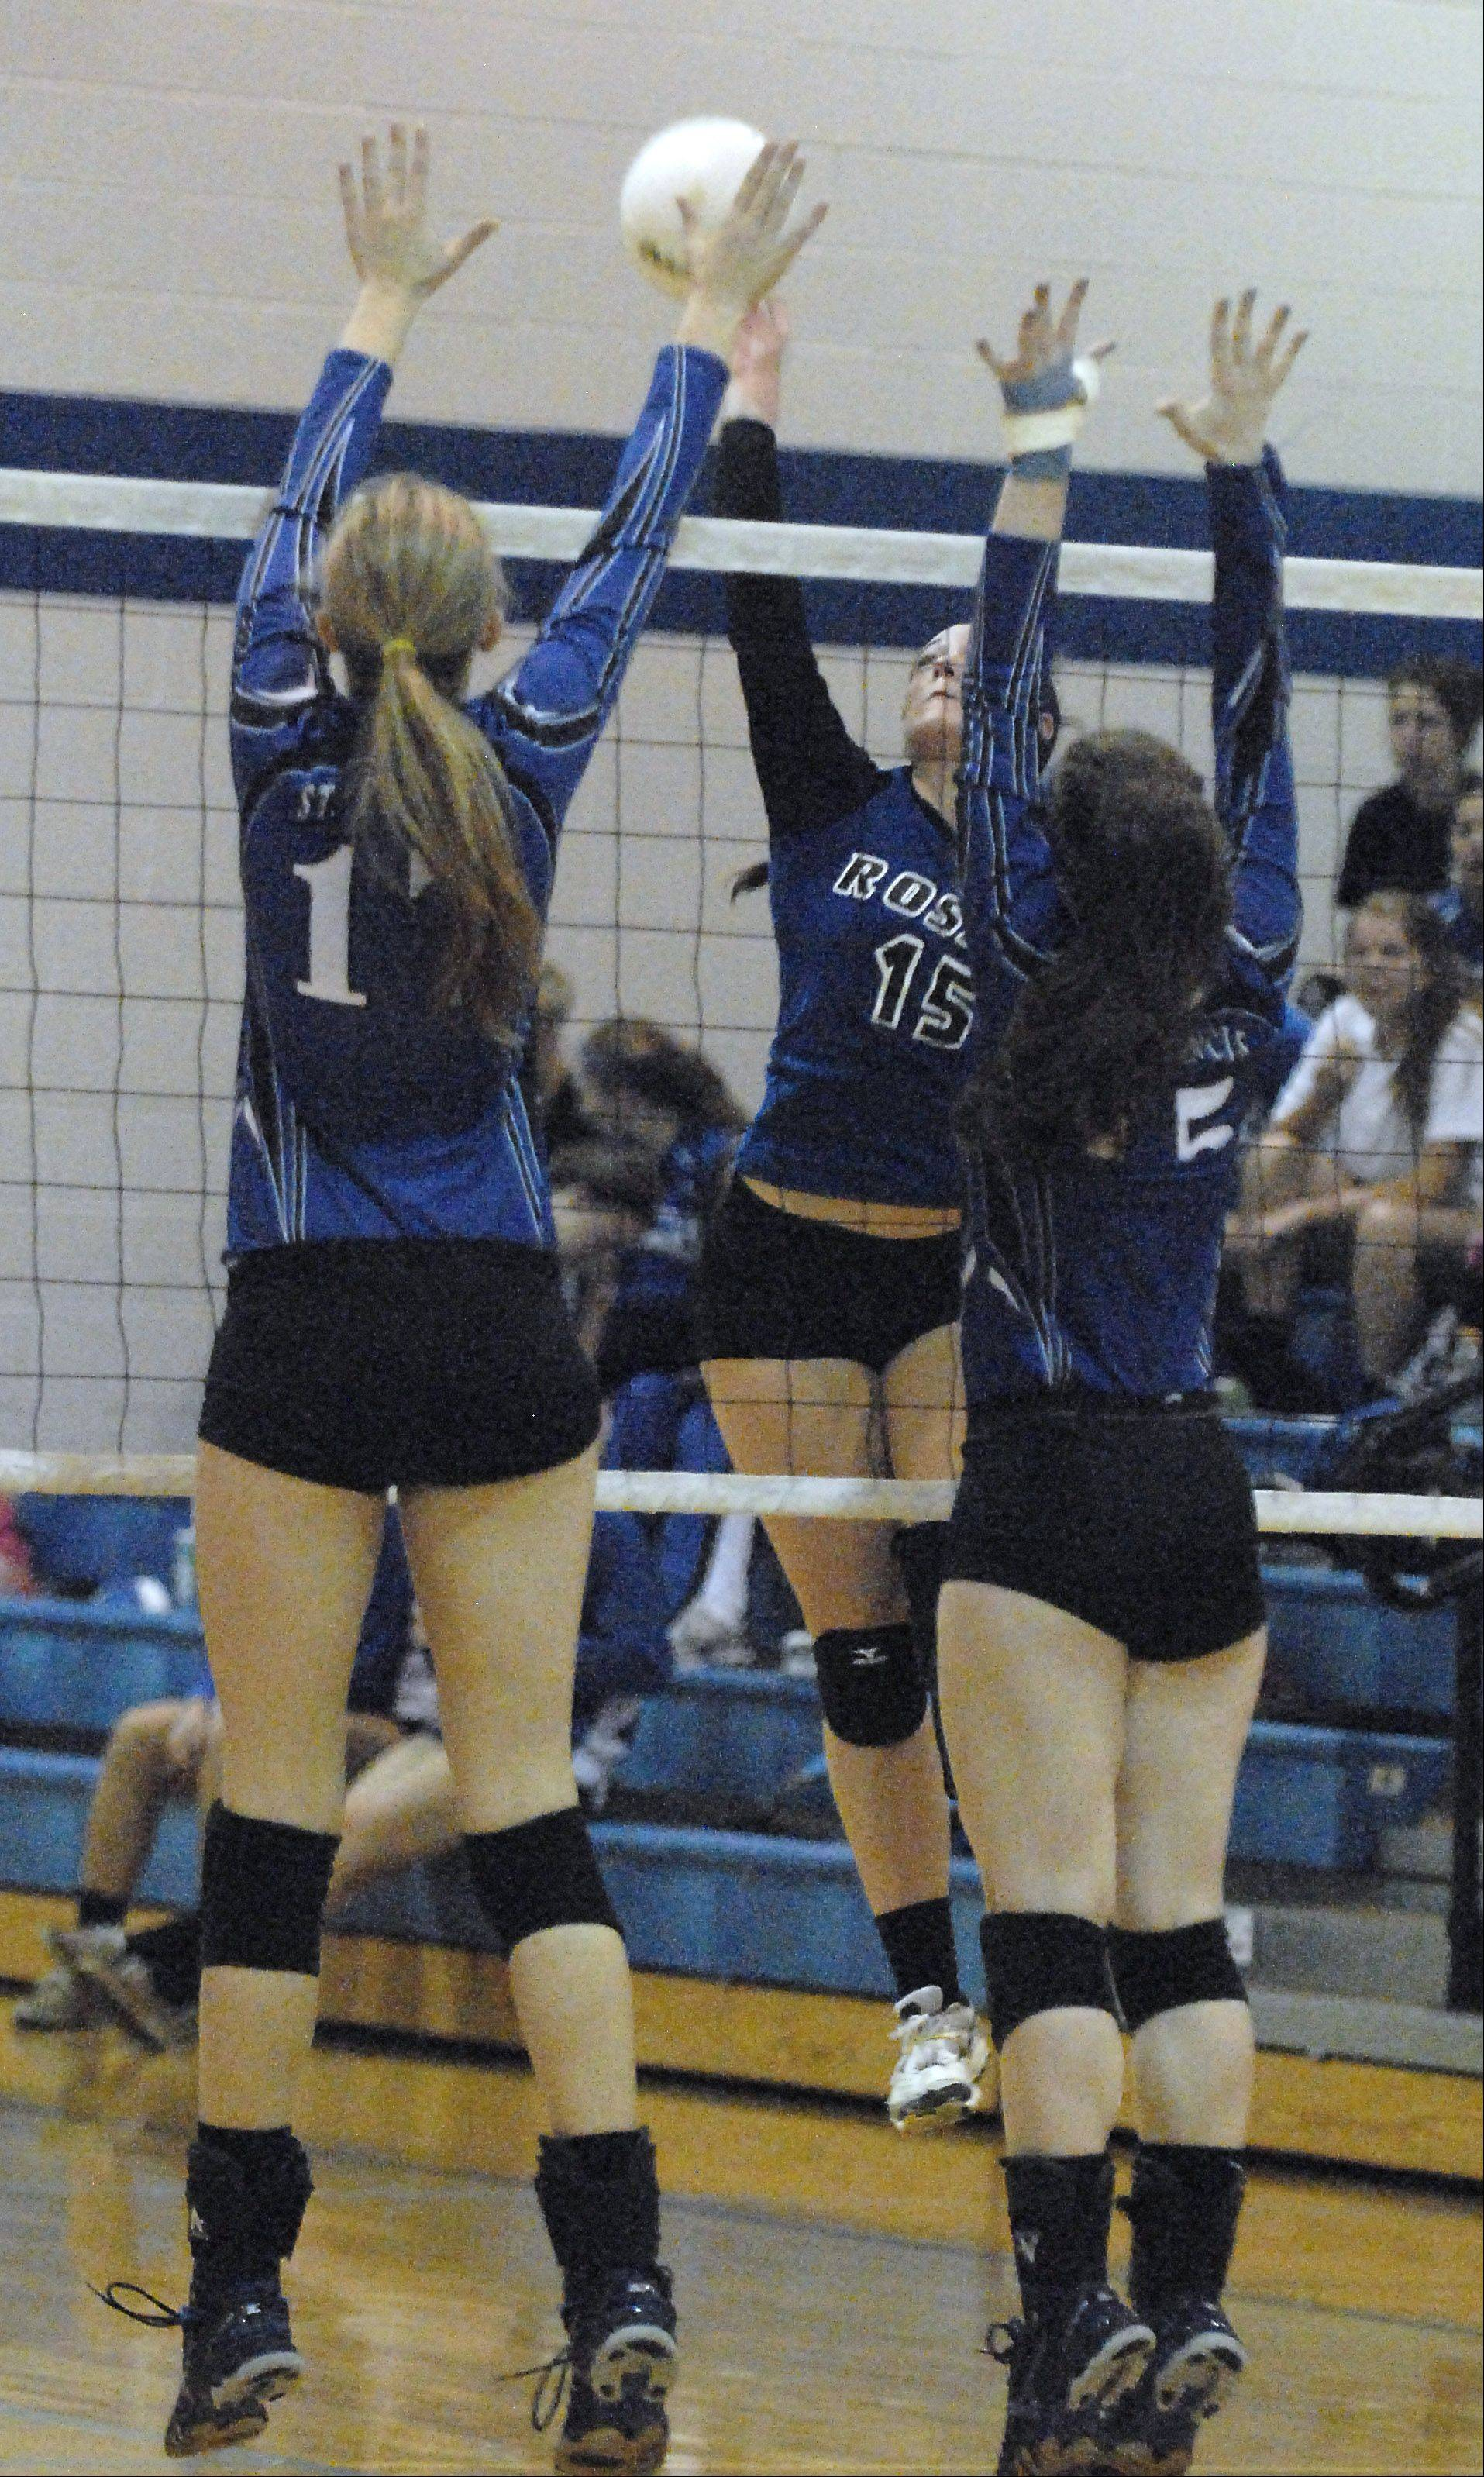 Laura Stoecker/lstoecker@dailyherald.comRosary's Erin Bowe spikes the ball over St. Francis' Mary Boken and McKenna Kelsay in the first game on Wednesday, October 3.